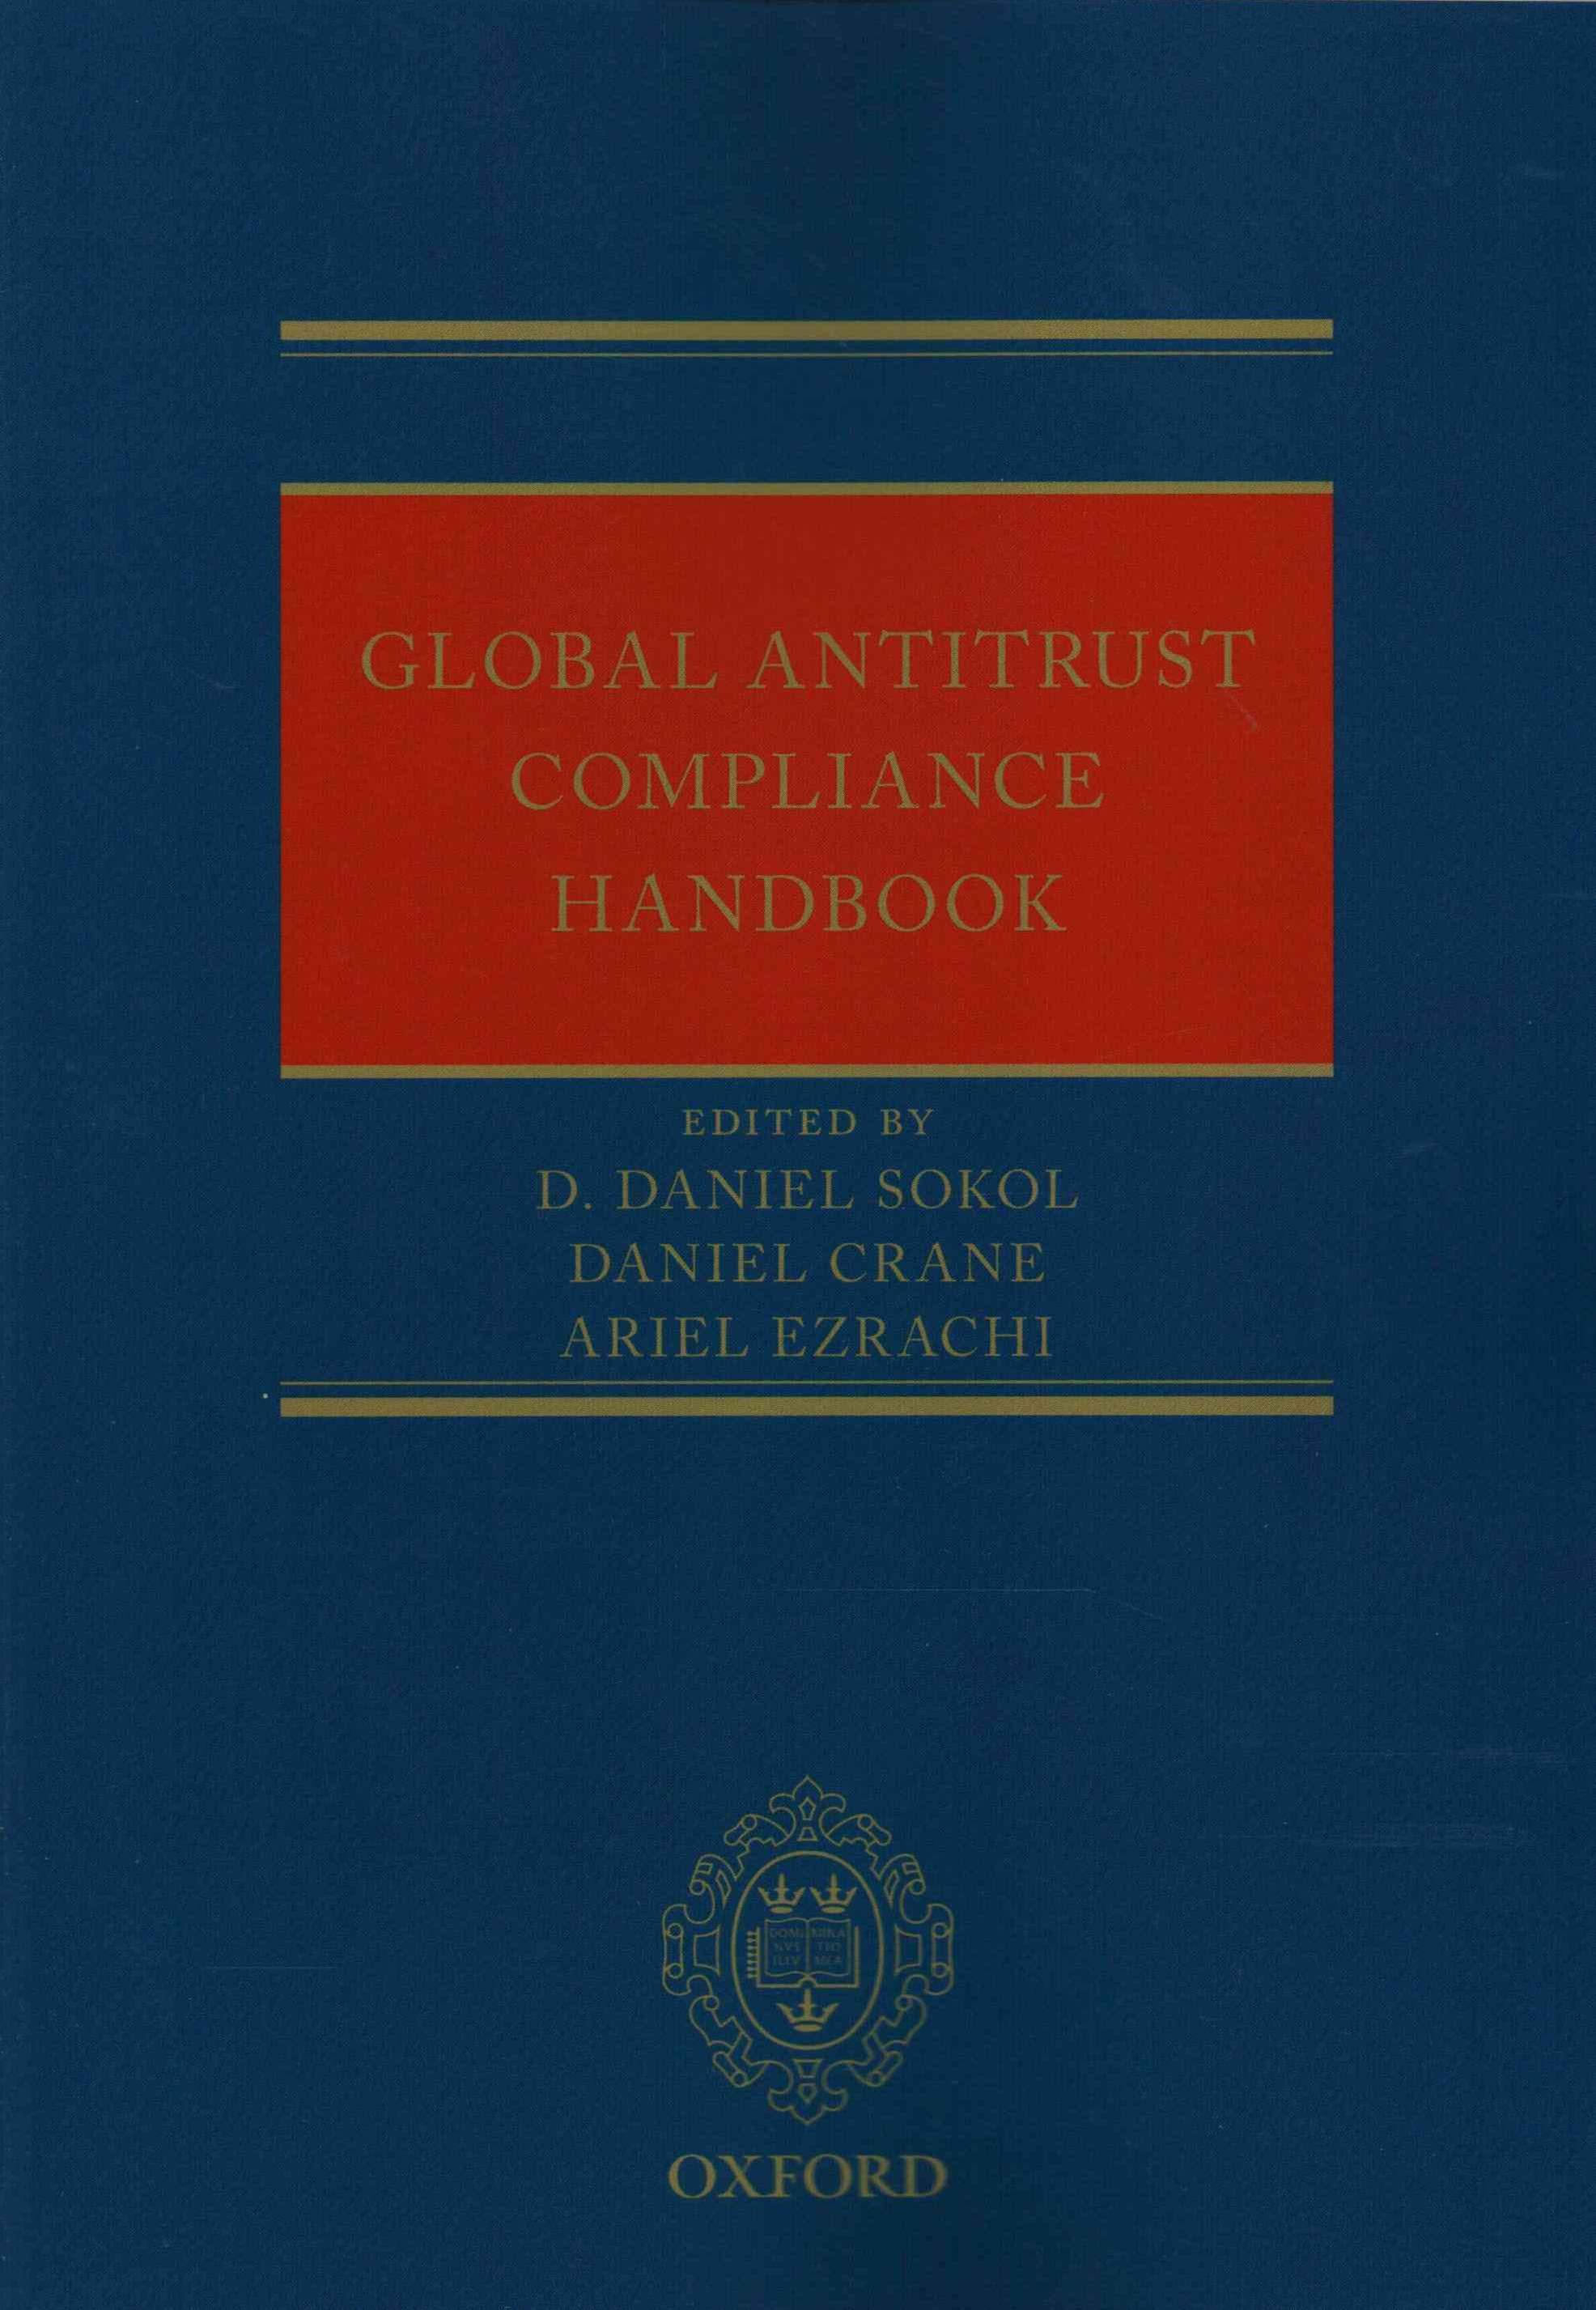 Global Antitrust and Compliance Handbook